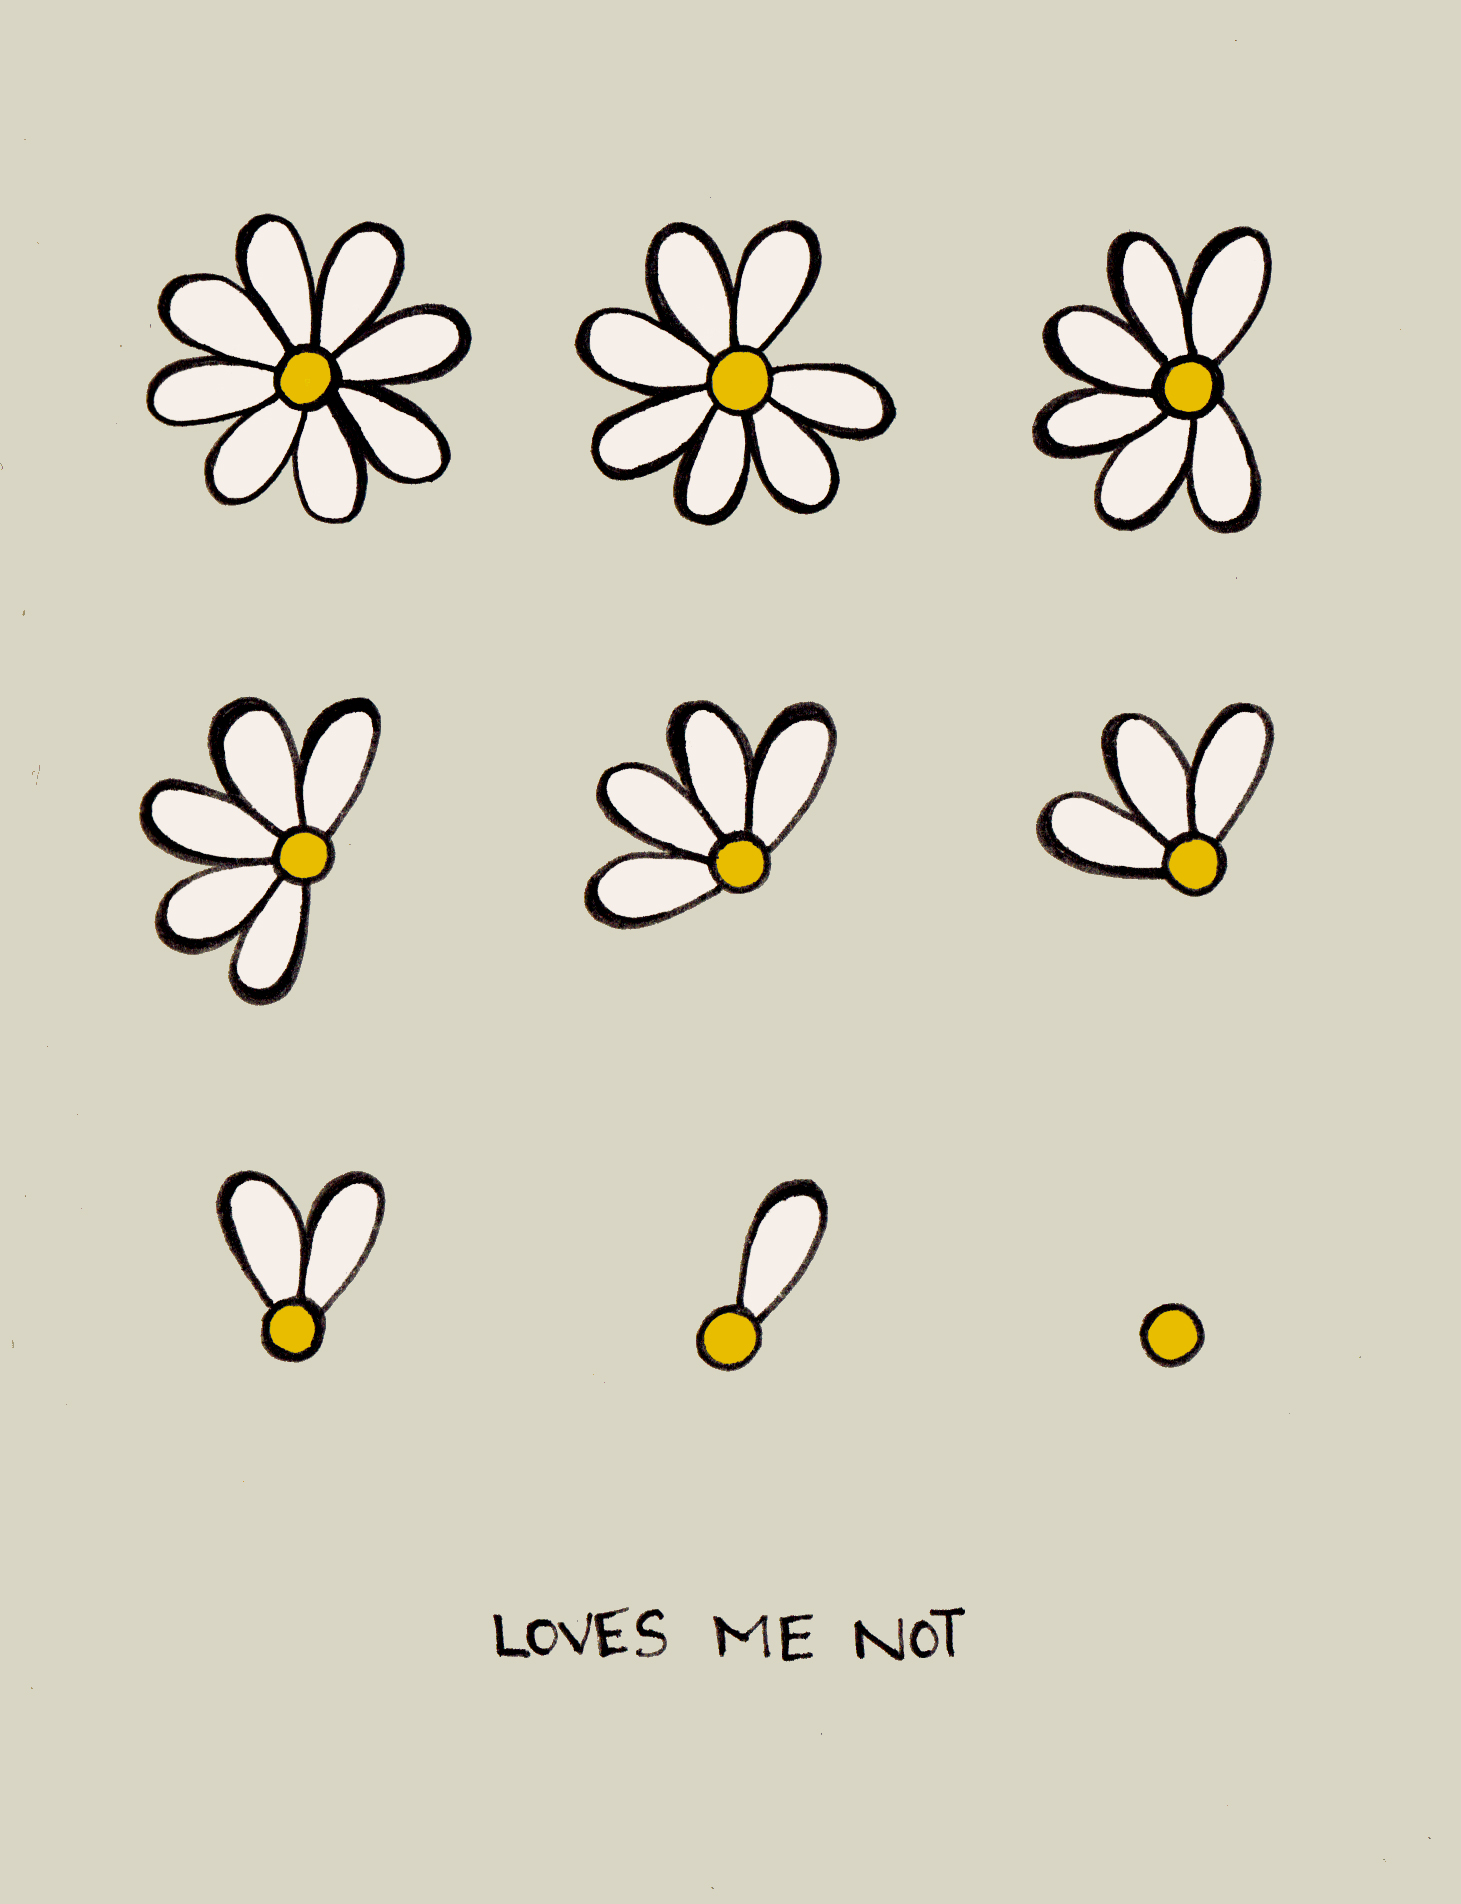 Loves Me Not